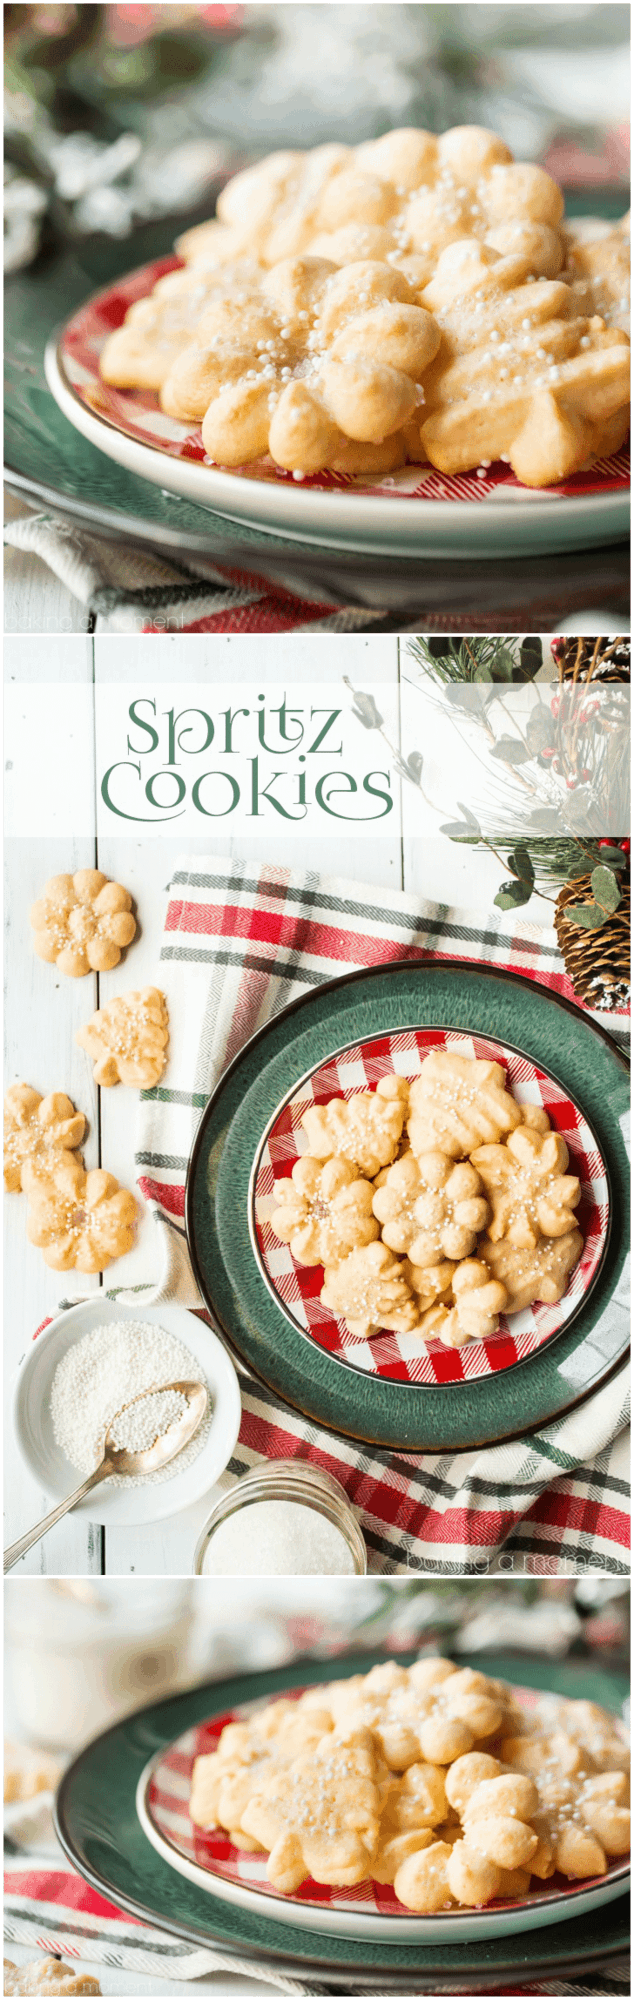 Spritz Cookies: light, crisp, and so buttery! This was the best recipe I've ever tried, they practically melted in my mouth! #food #desserts #cookies #spritzcookies #buttercookies #christmas #holiday #baking